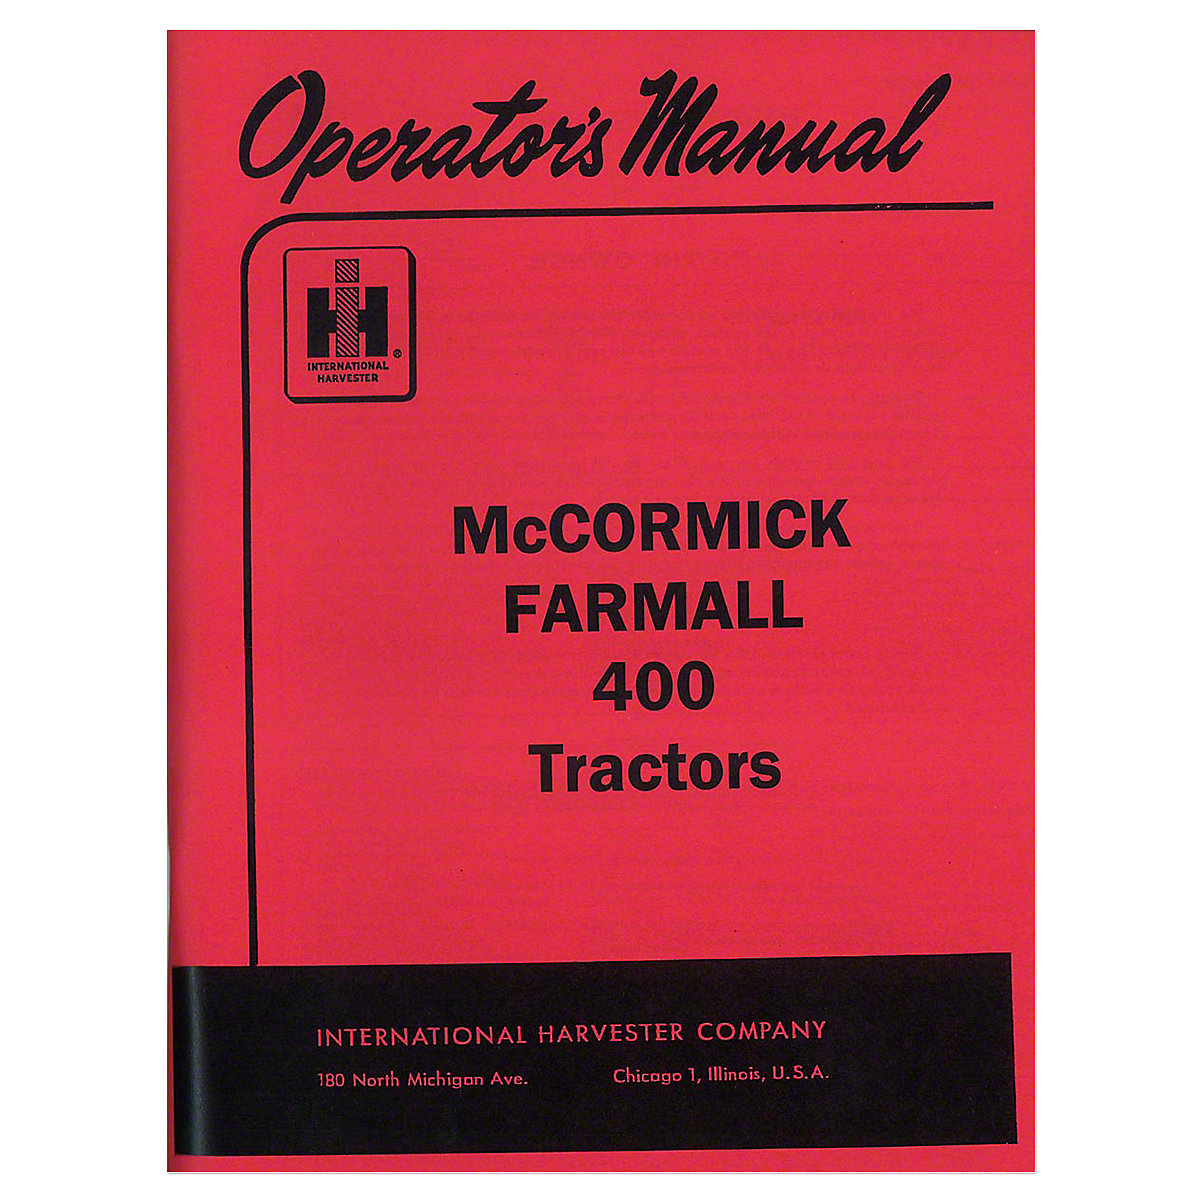 REP102 - OPERATORS MANUAL: FARMALL 400